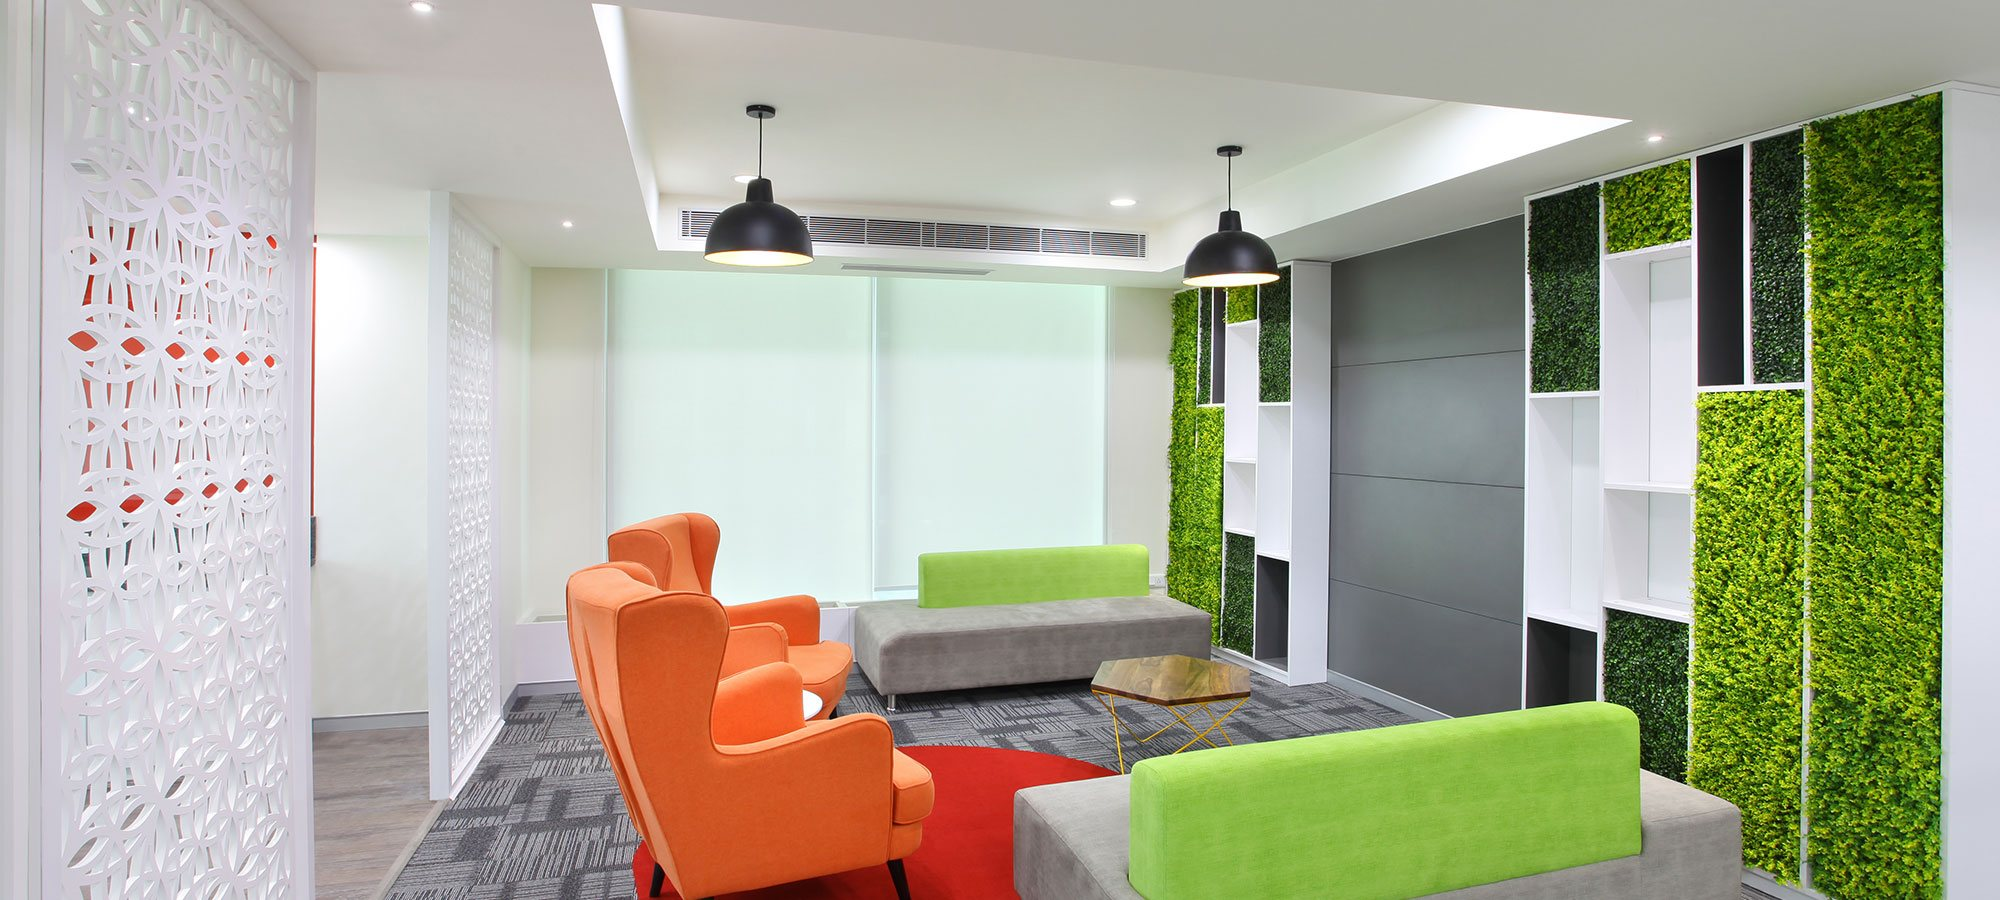 Office Interior Design Corporate Office Interior Designers In Delhi Ncr Office Interior Design Firm Delhi India